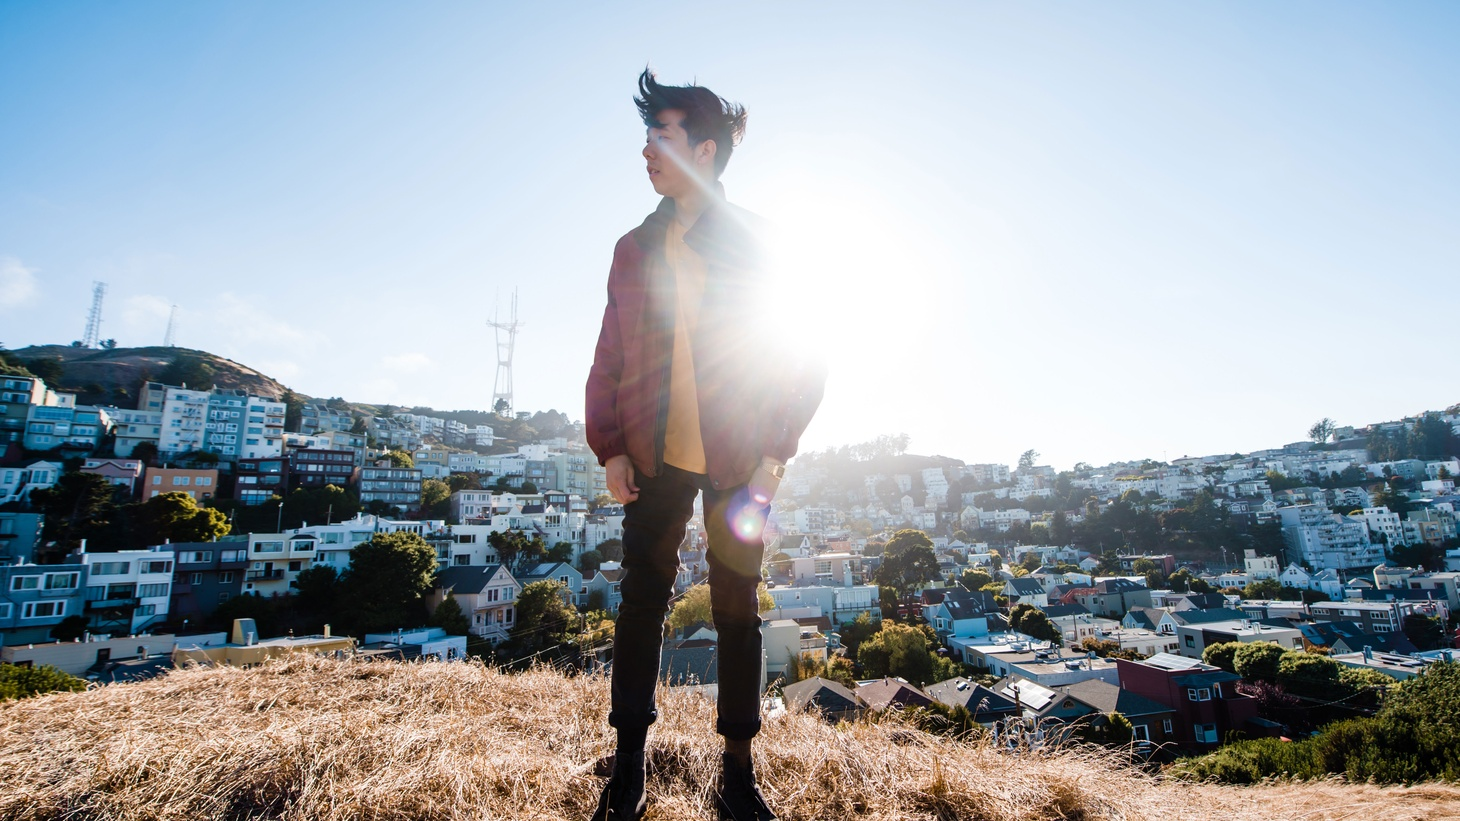 San Francisco-based producer Giraffage (Charlie Yin), whose dreamy synth-pop productions have appointed him one of electronic music's most refreshing and innovative producers.